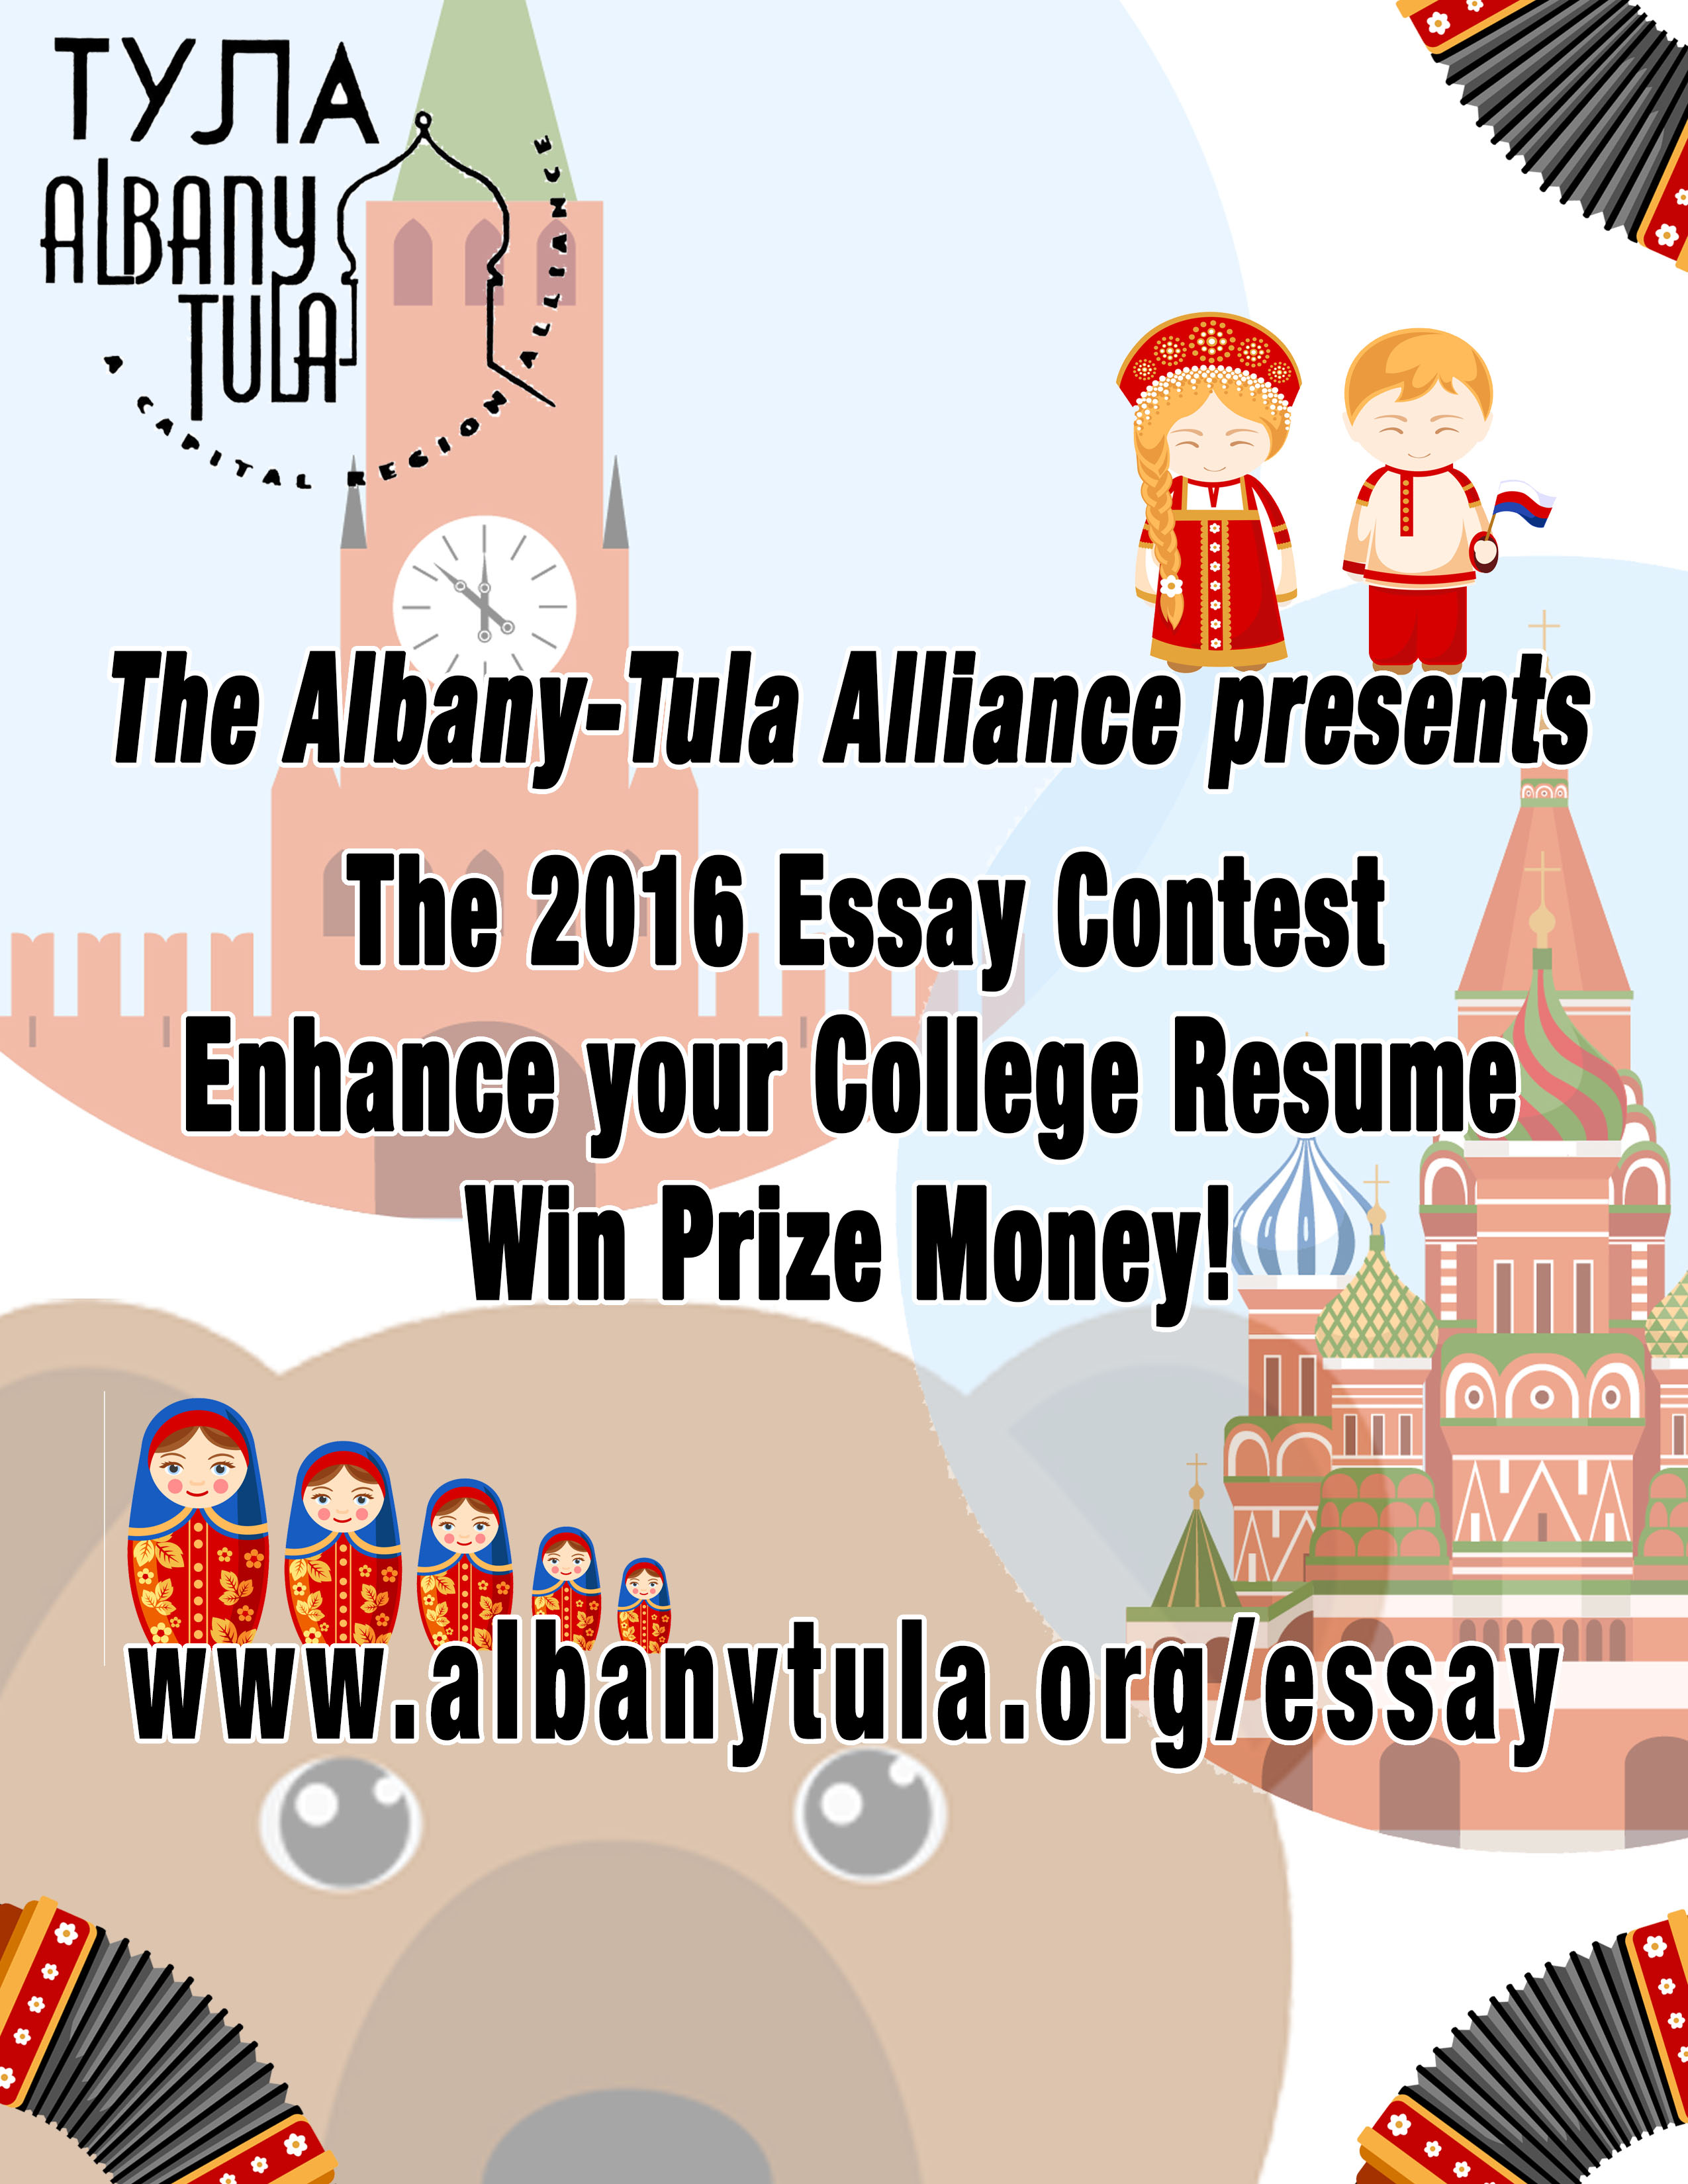 essay contest to win 2019 sbo essay contest students you can win your share of $20,000 including matching music products for your school music program ten $1,000 scholarships awarded in two categories.